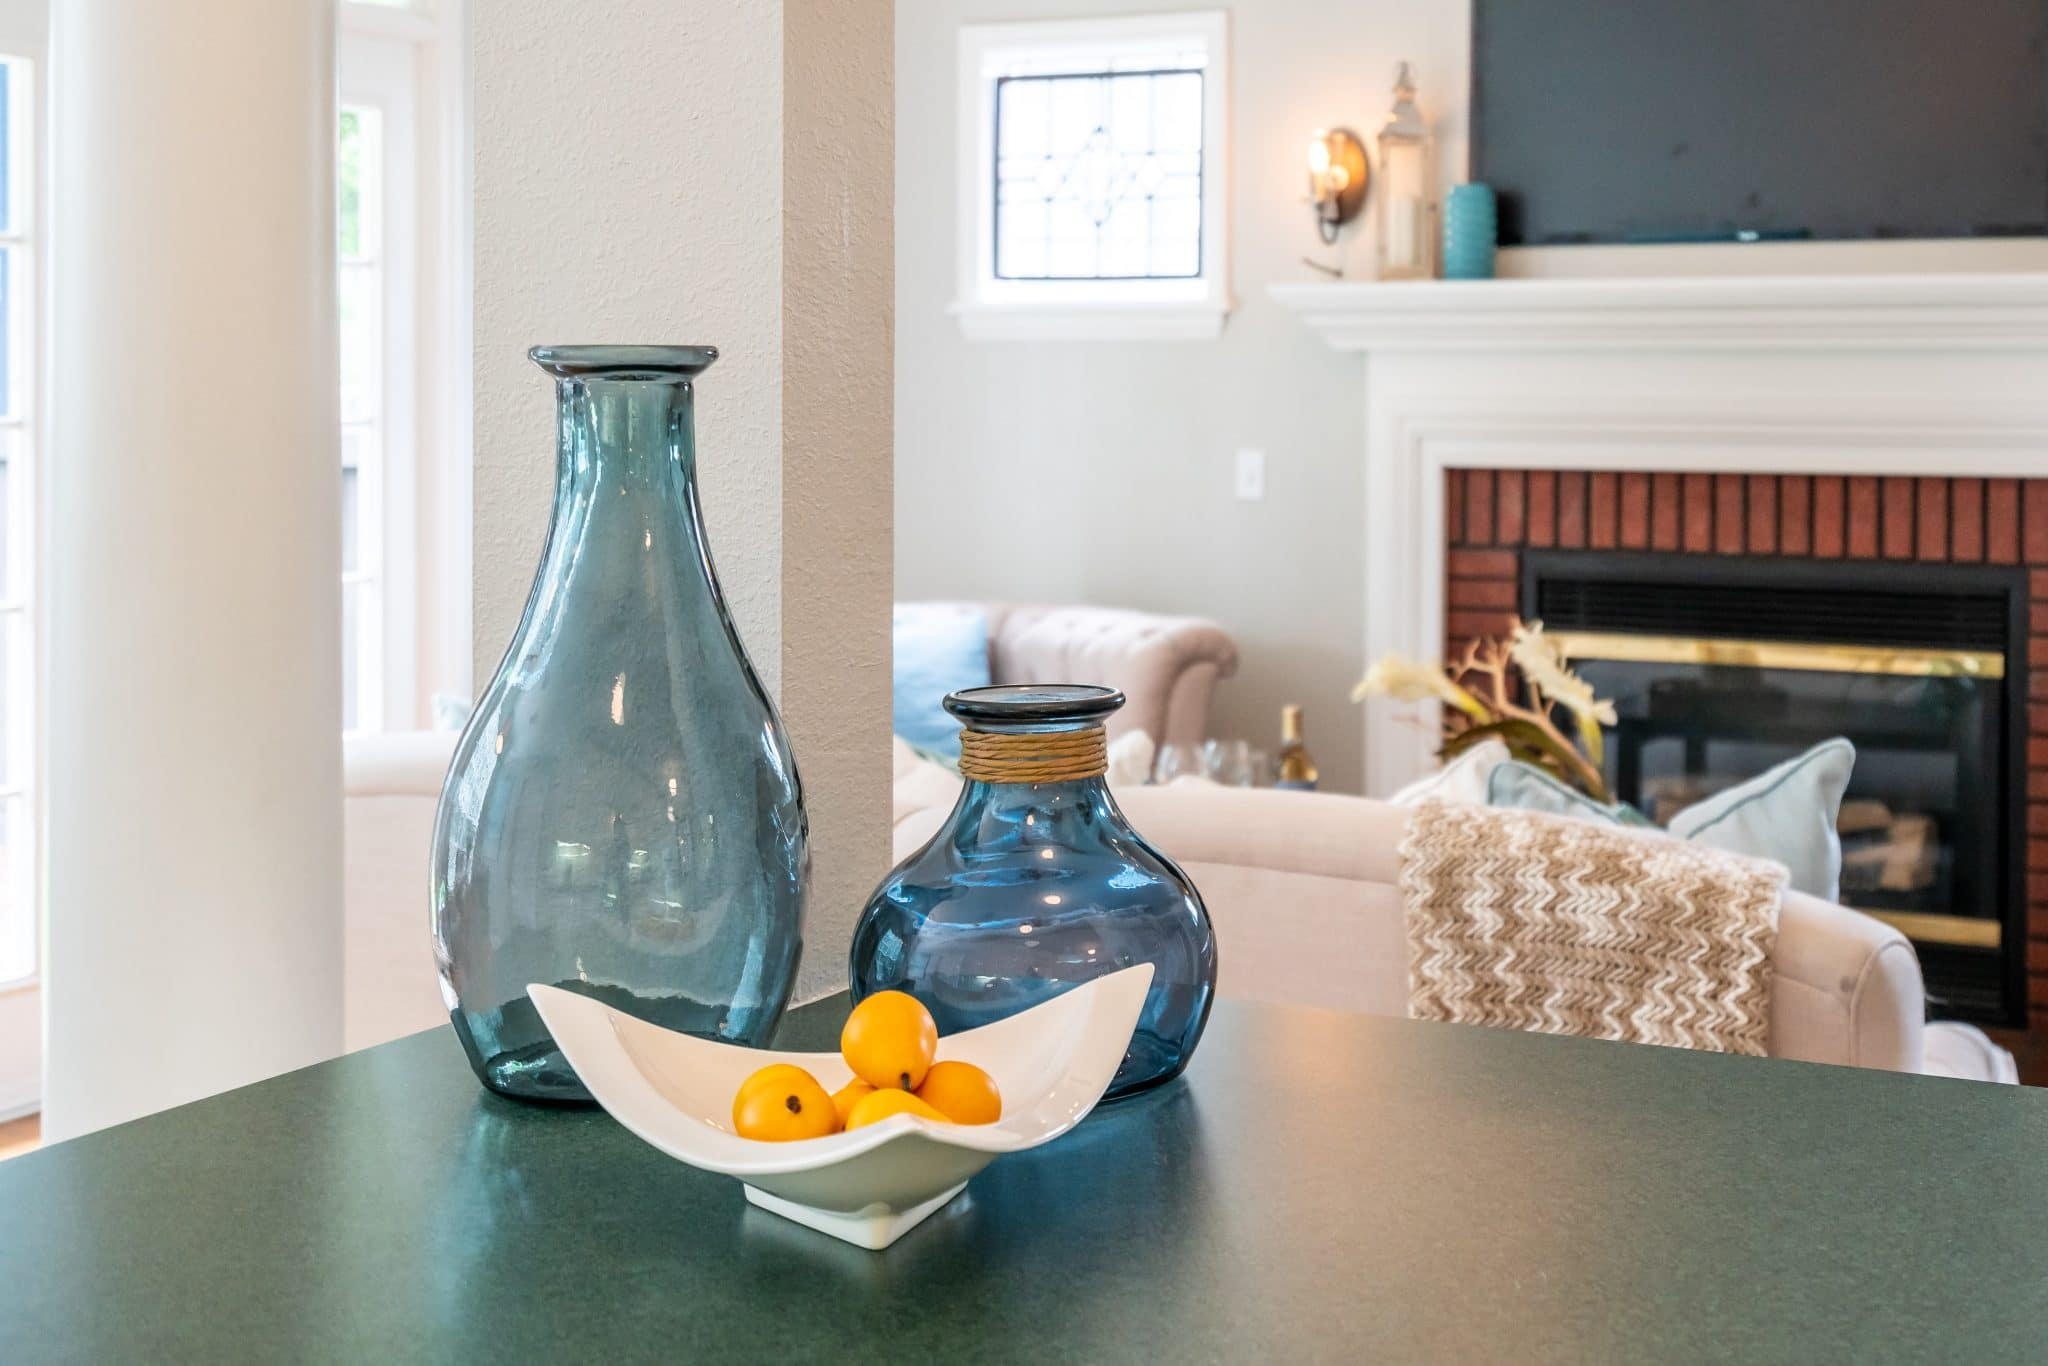 An example of soft staging: two vases and a bowl on a kitchen counter